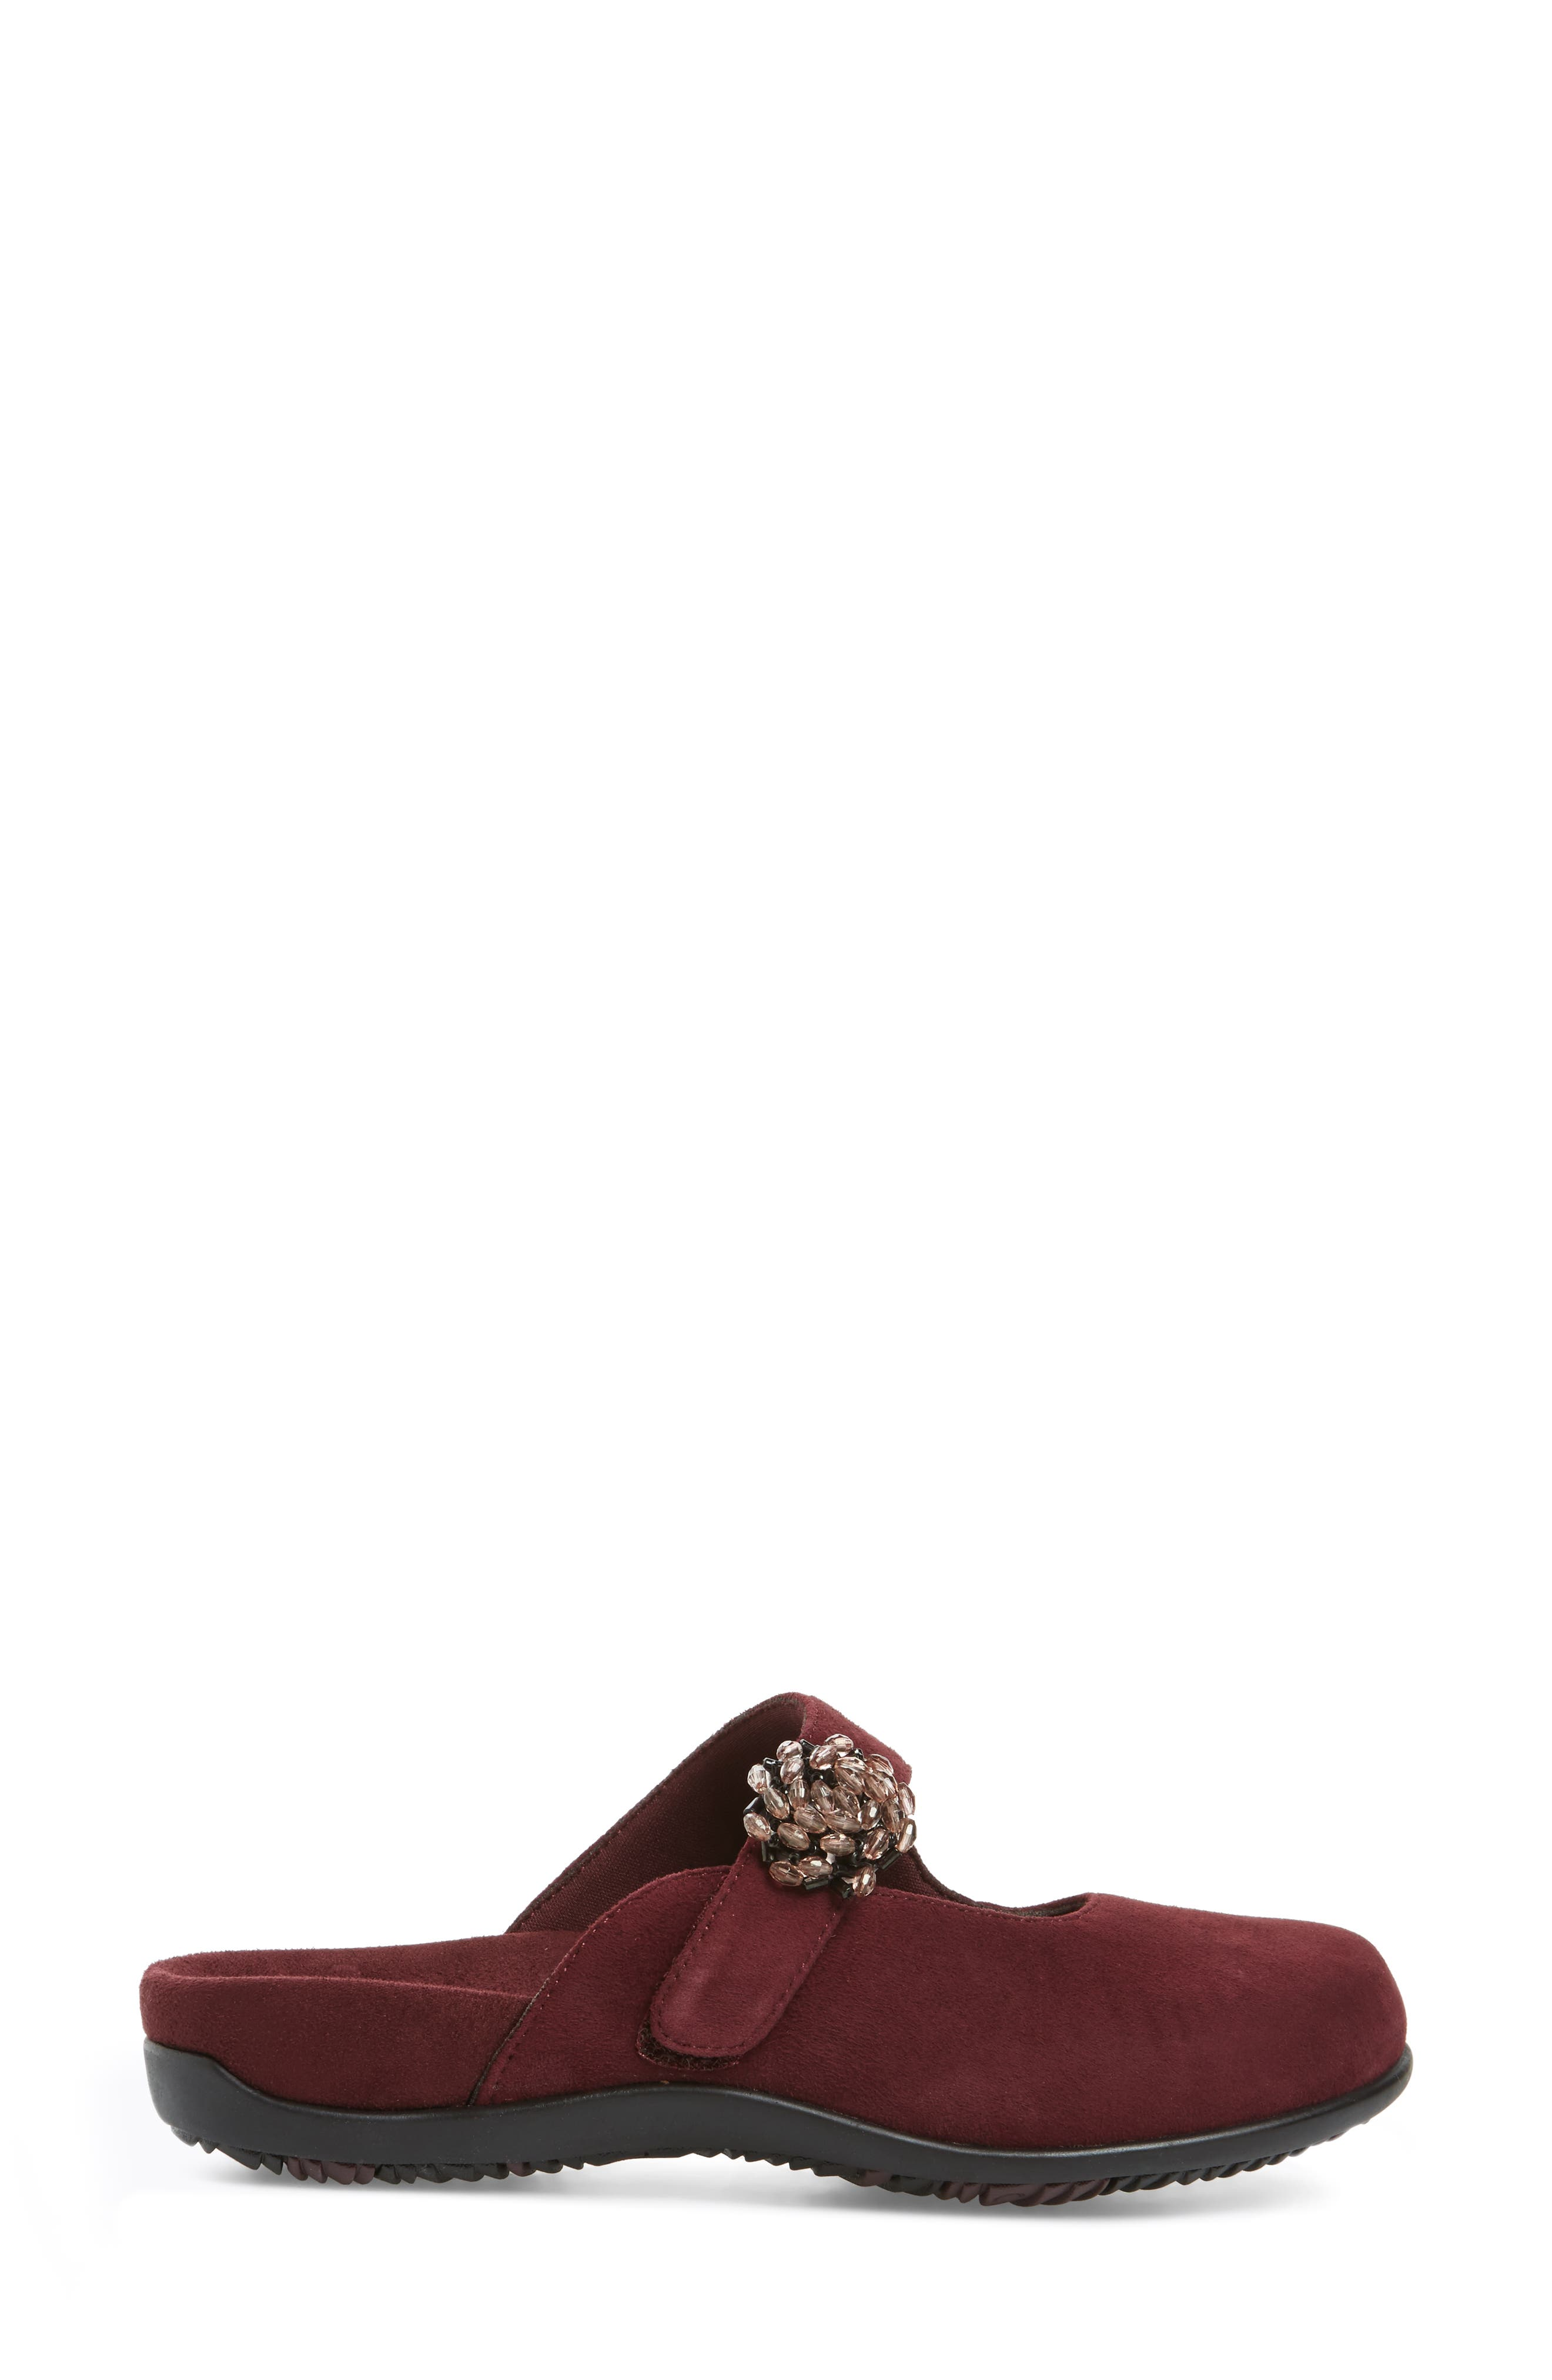 Rest Joan Mary Jane Mule,                             Alternate thumbnail 3, color,                             Merlot Suede